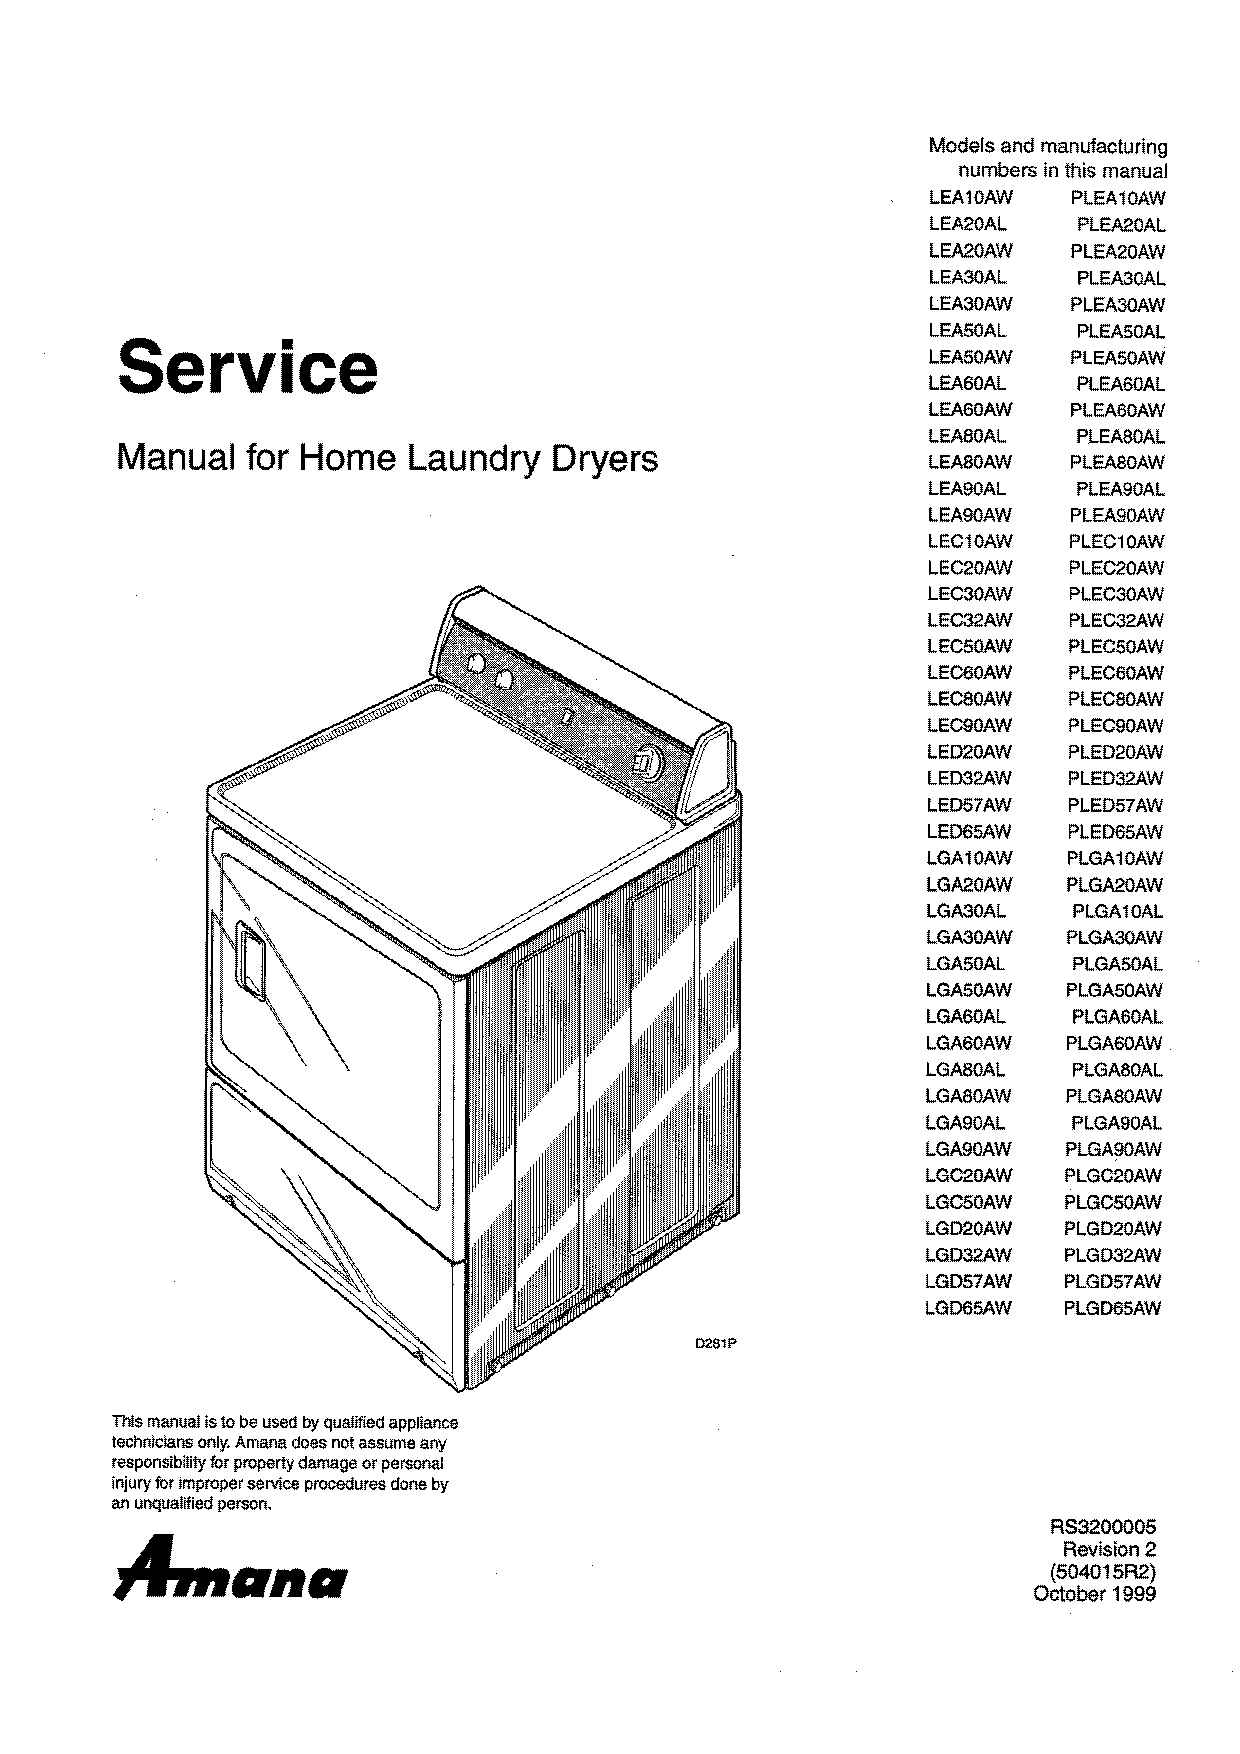 Amana Lea60aw home Laundry dryer Service Manual